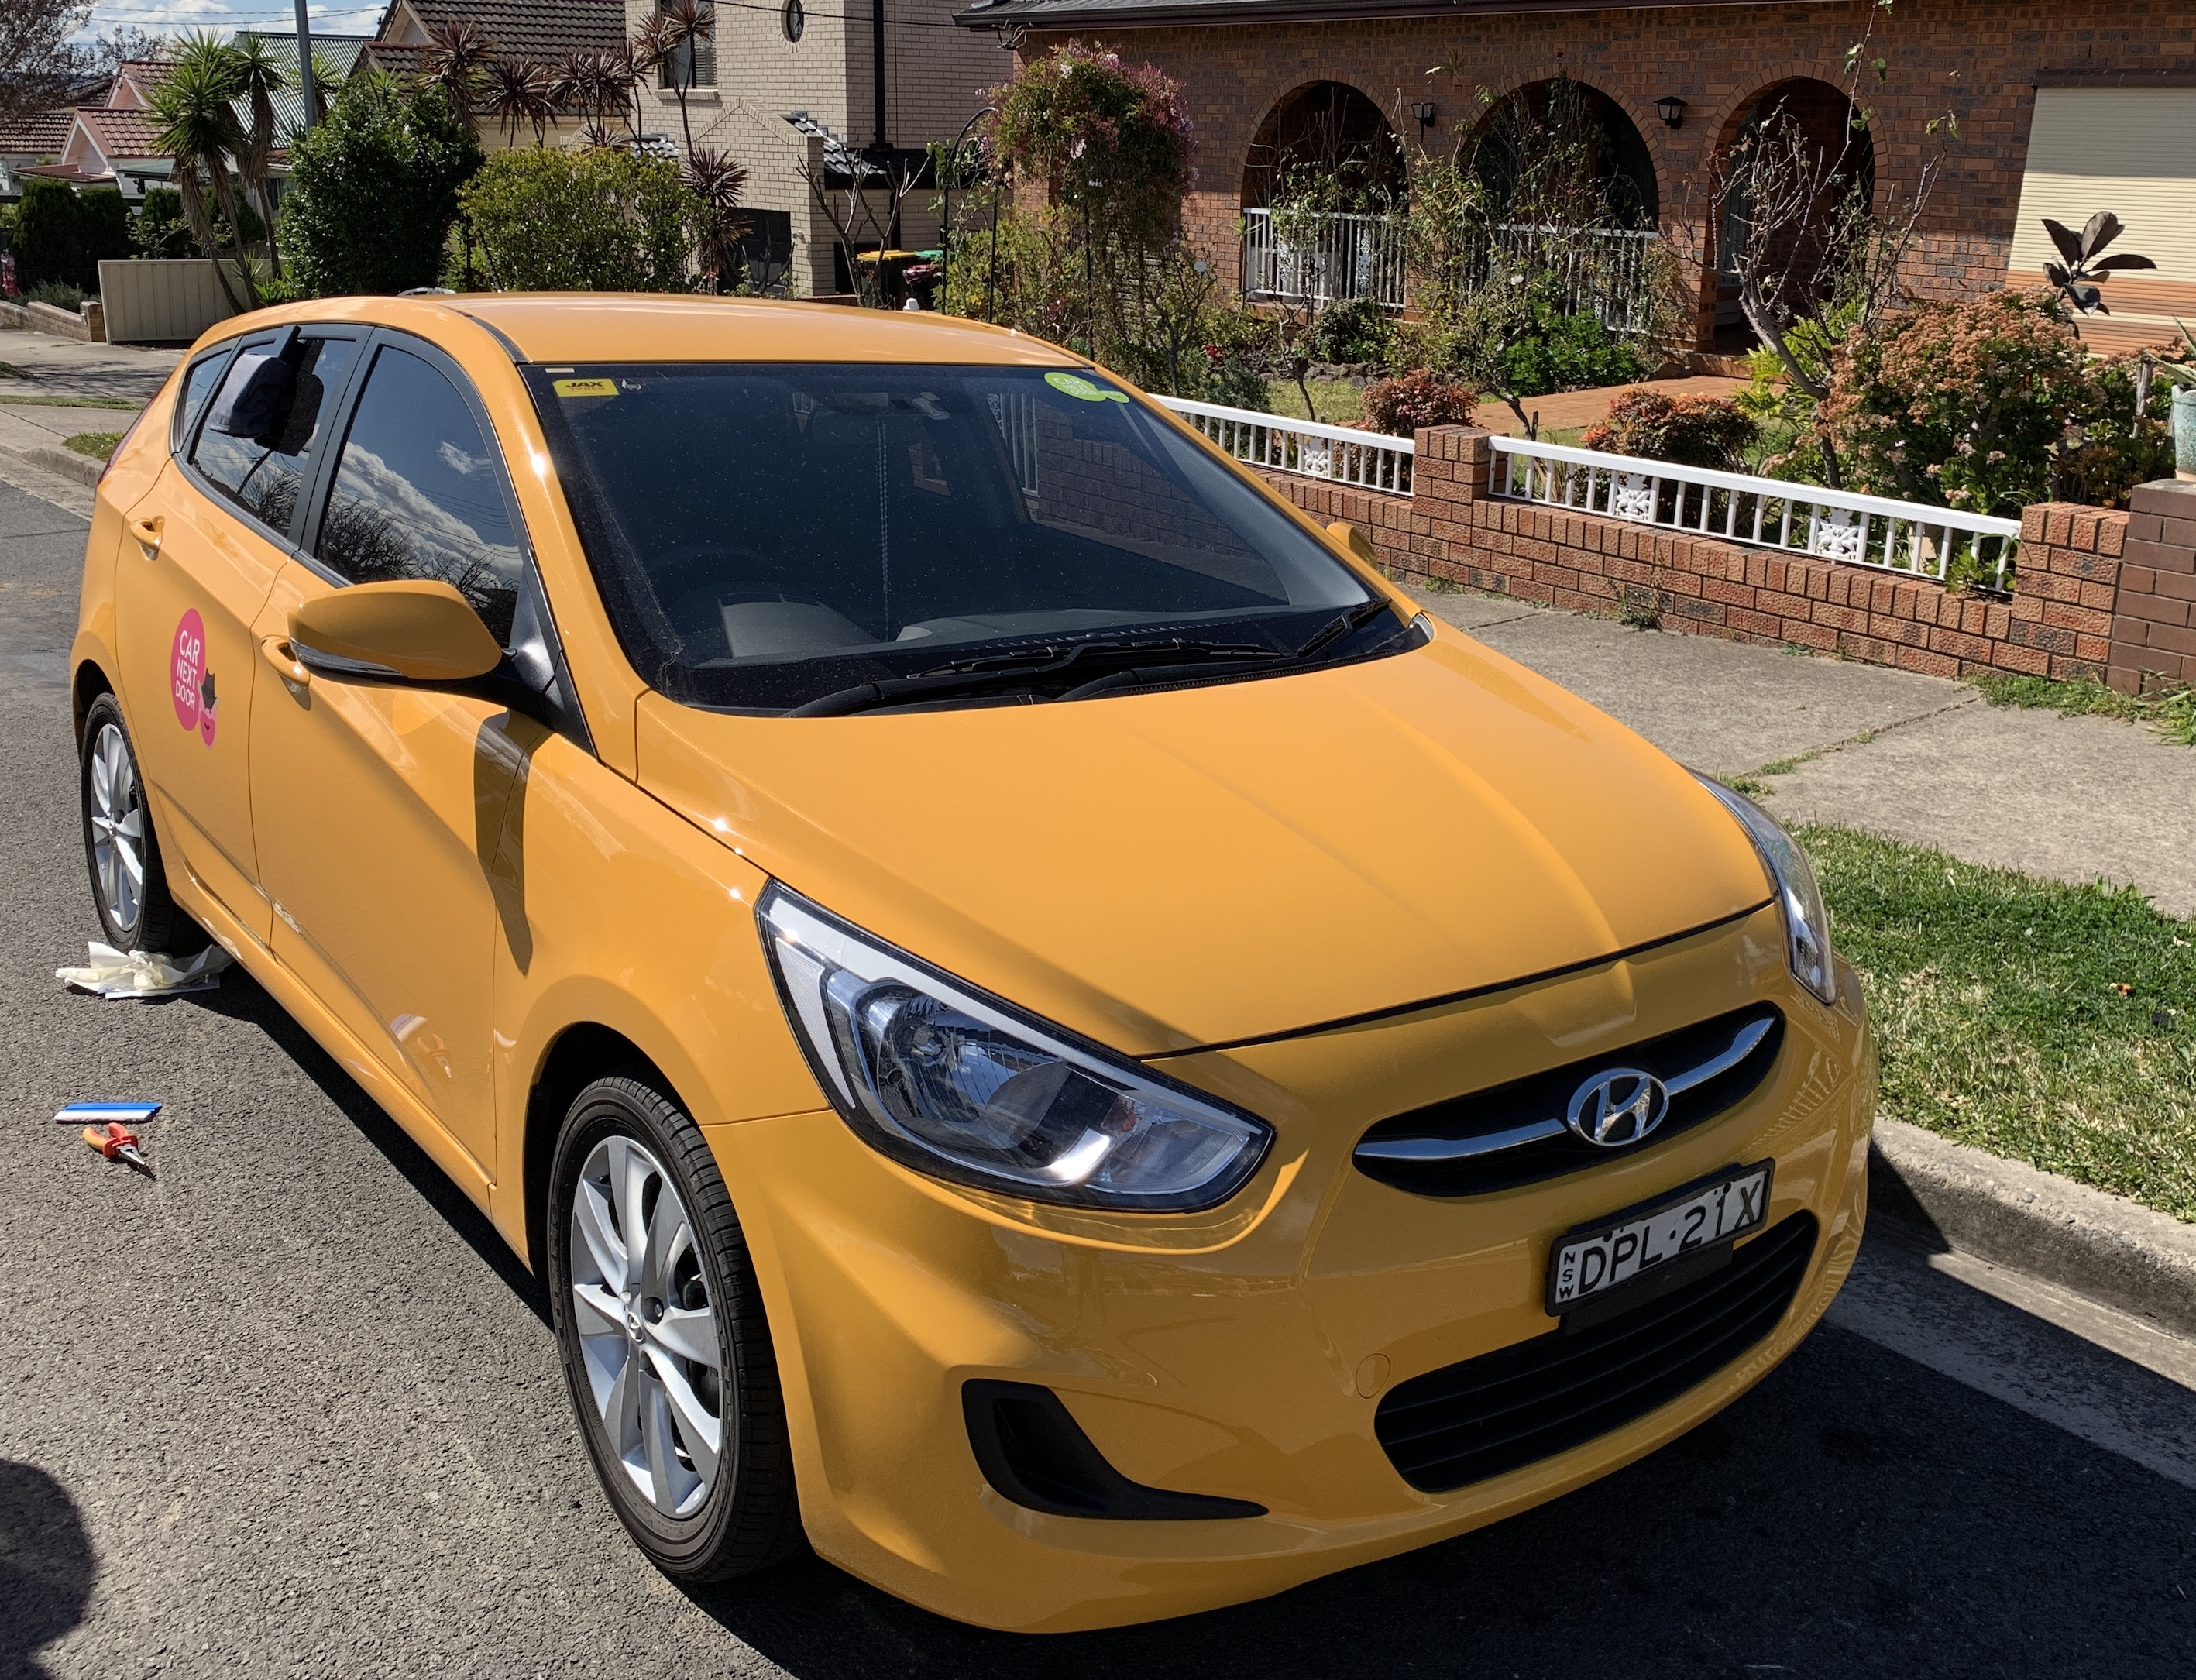 Picture of Danilo's 2017 Hyundai Accent